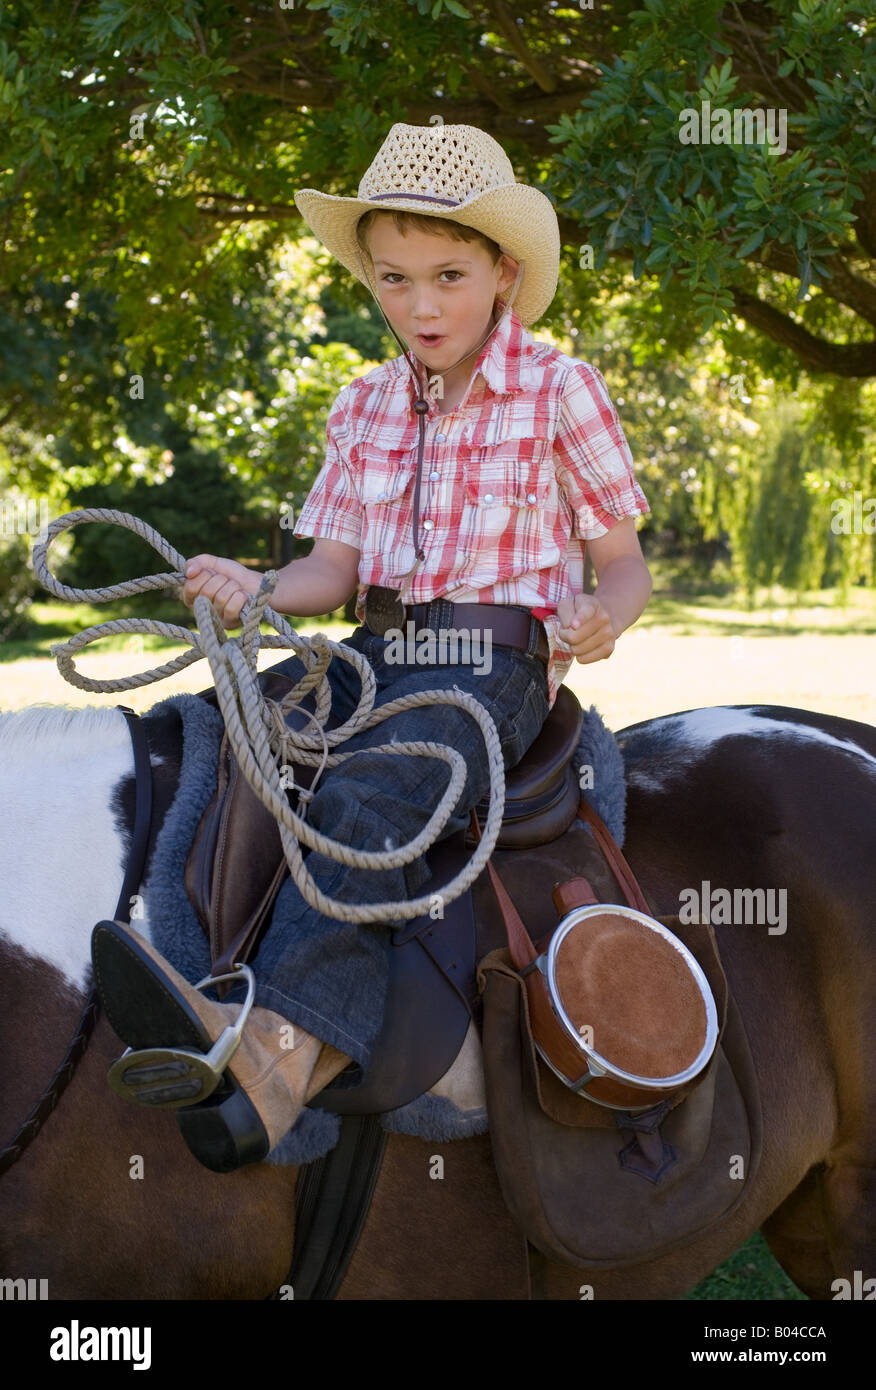 A boy riding a horse and holding a lasso - Stock Image